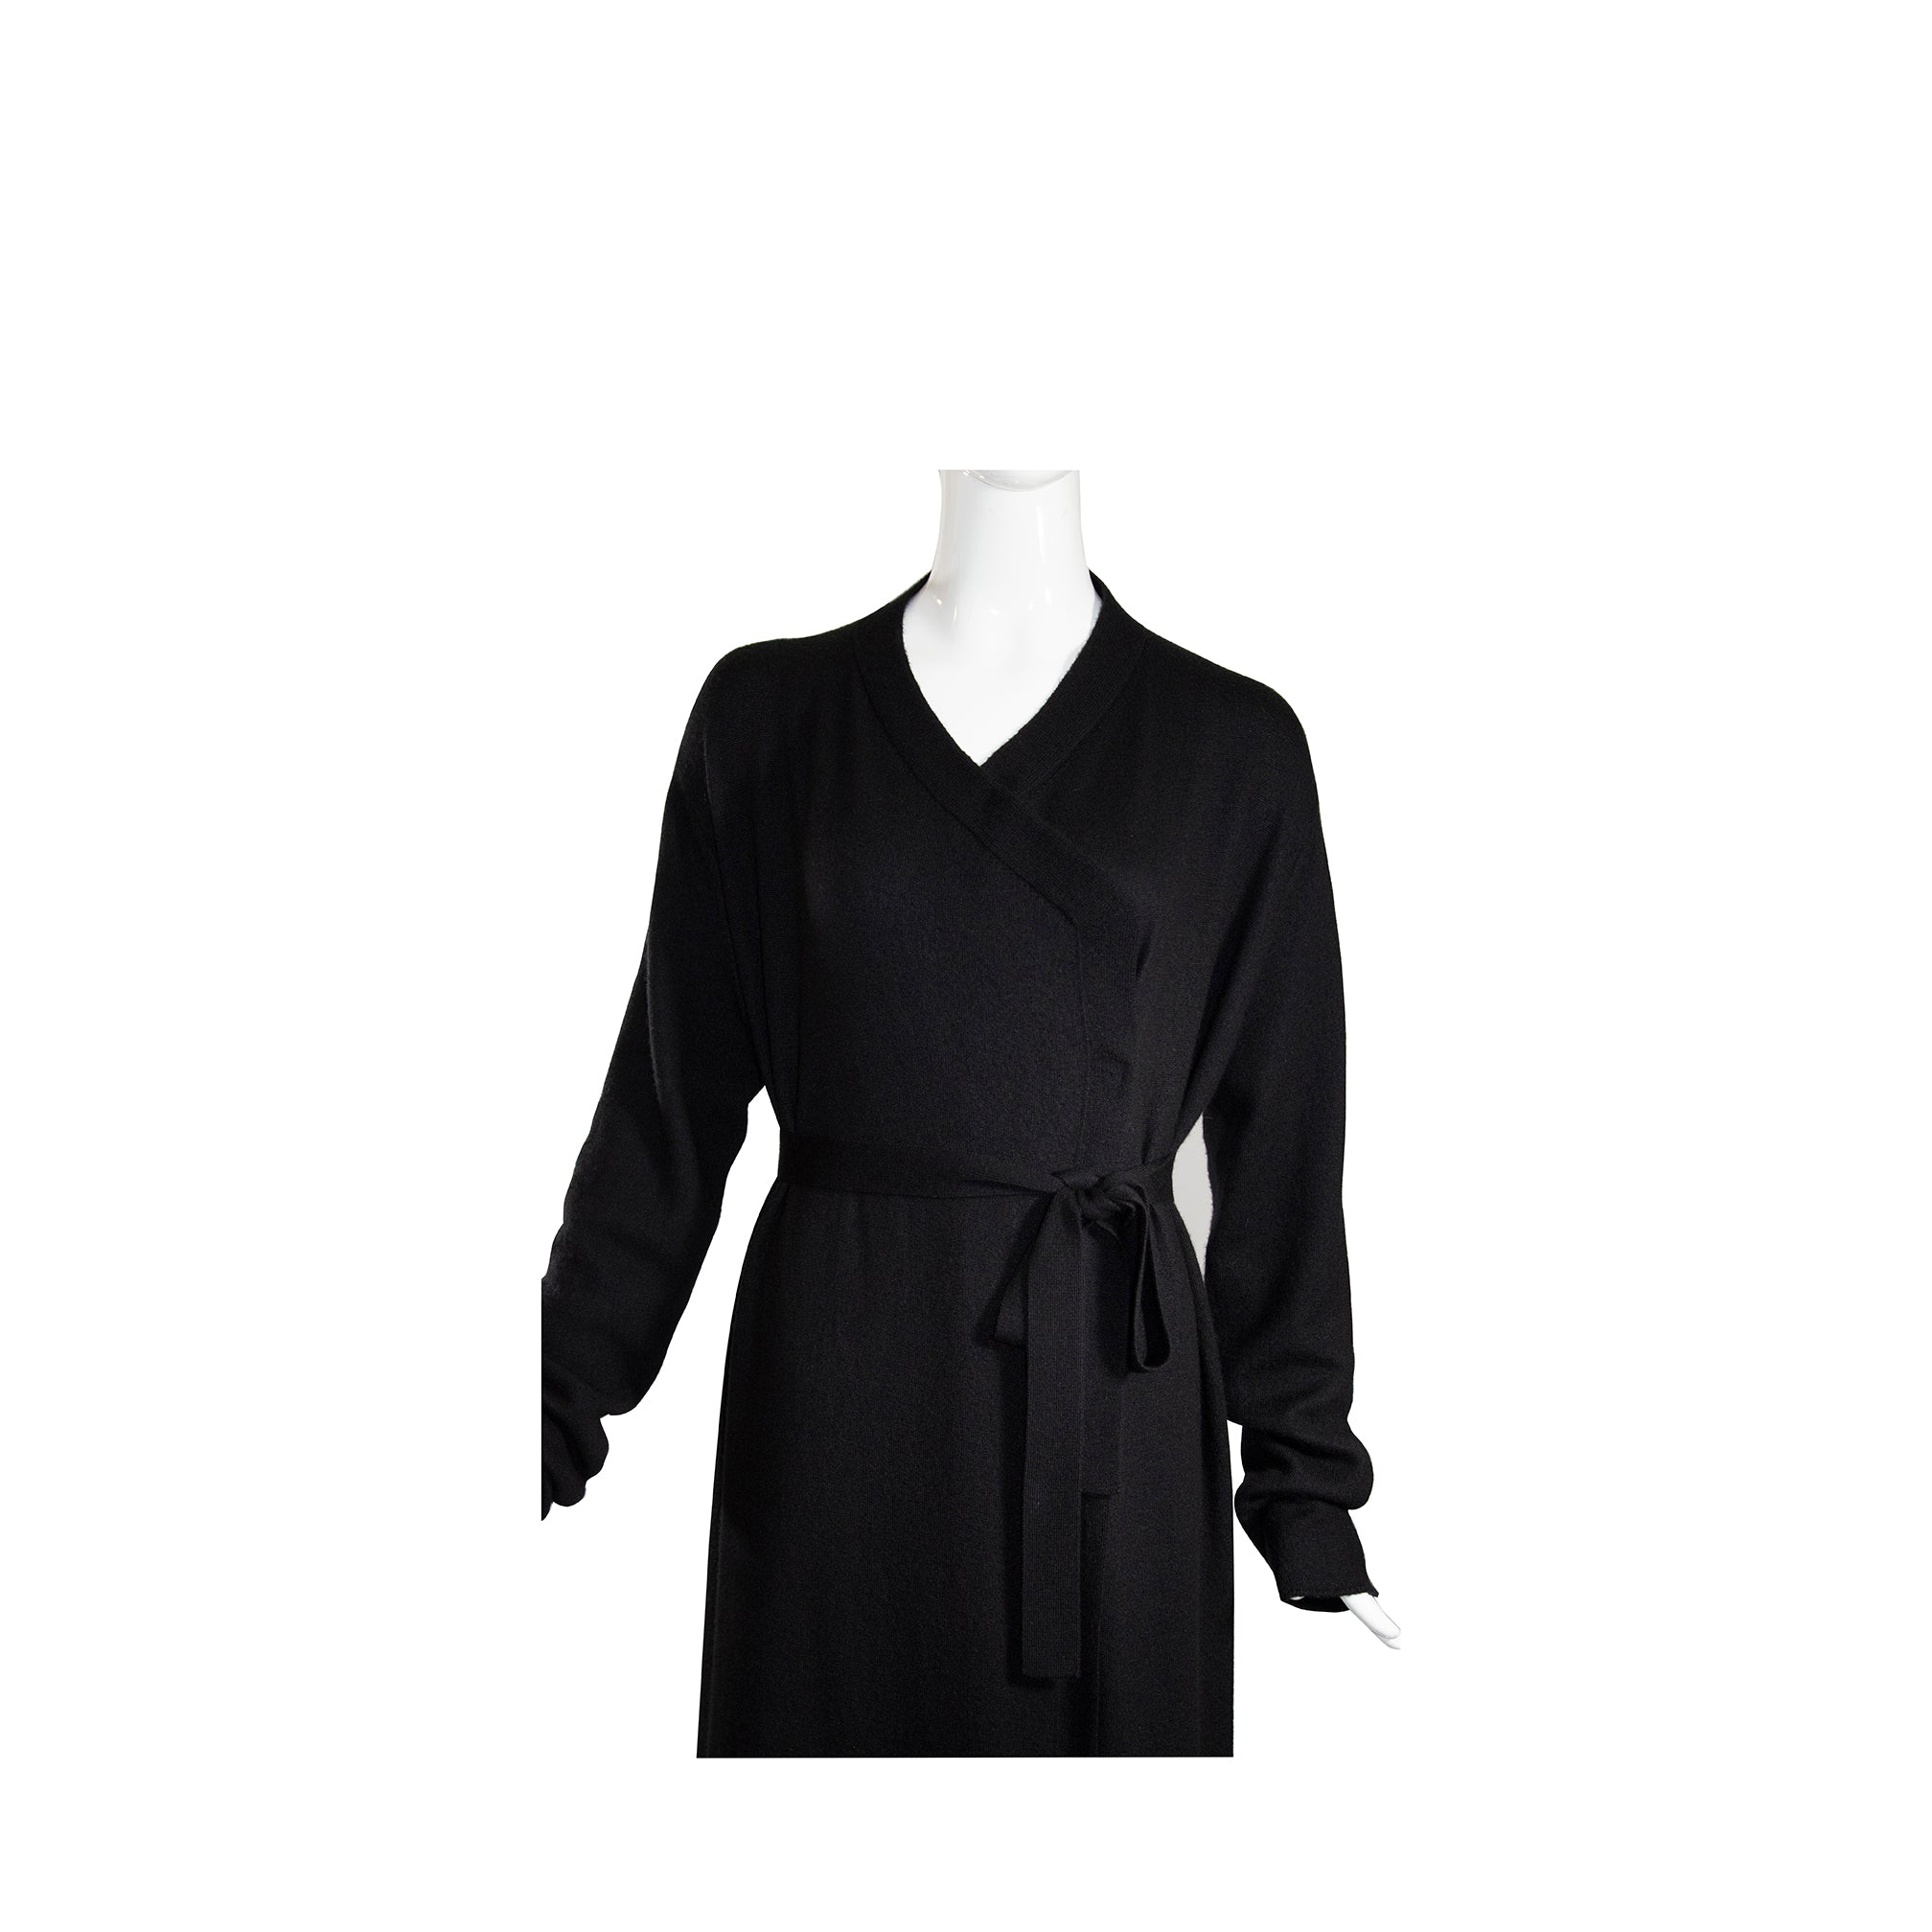 'Sold' RICK OWENS Walrus FW17 Black Cashmere Belted Bath Robe Cardigan Sweater L $2650